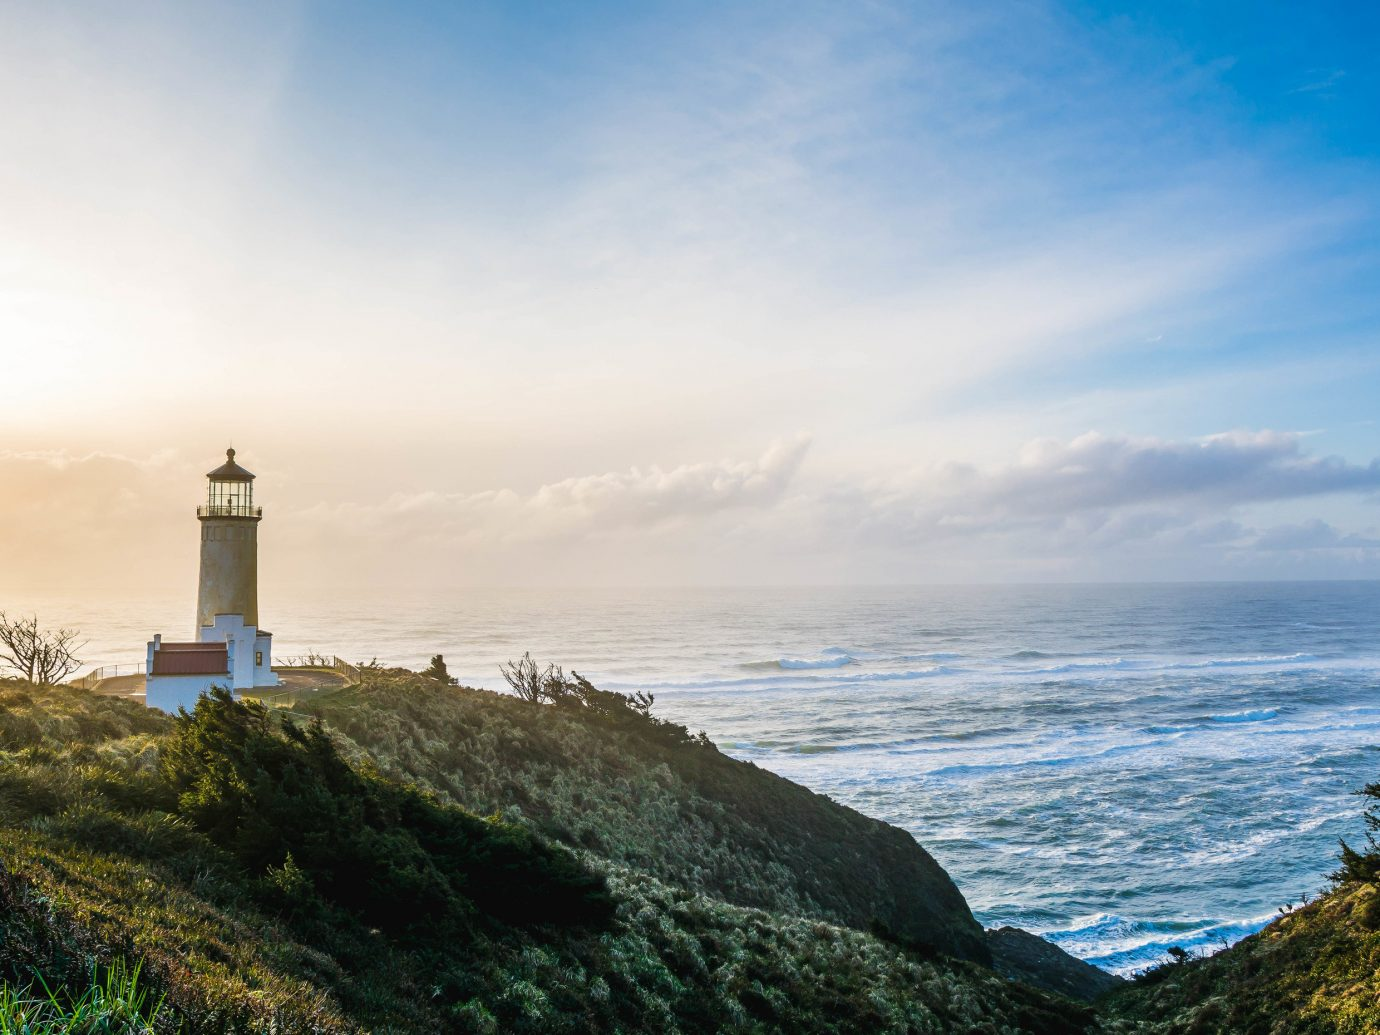 America Beach Trip Ideas West Coast sky Sea lighthouse Coast tower promontory shore headland Ocean cloud horizon morning terrain cape tree beacon daytime sunlight calm coastal and oceanic landforms cliff tourism landscape evening cove bay